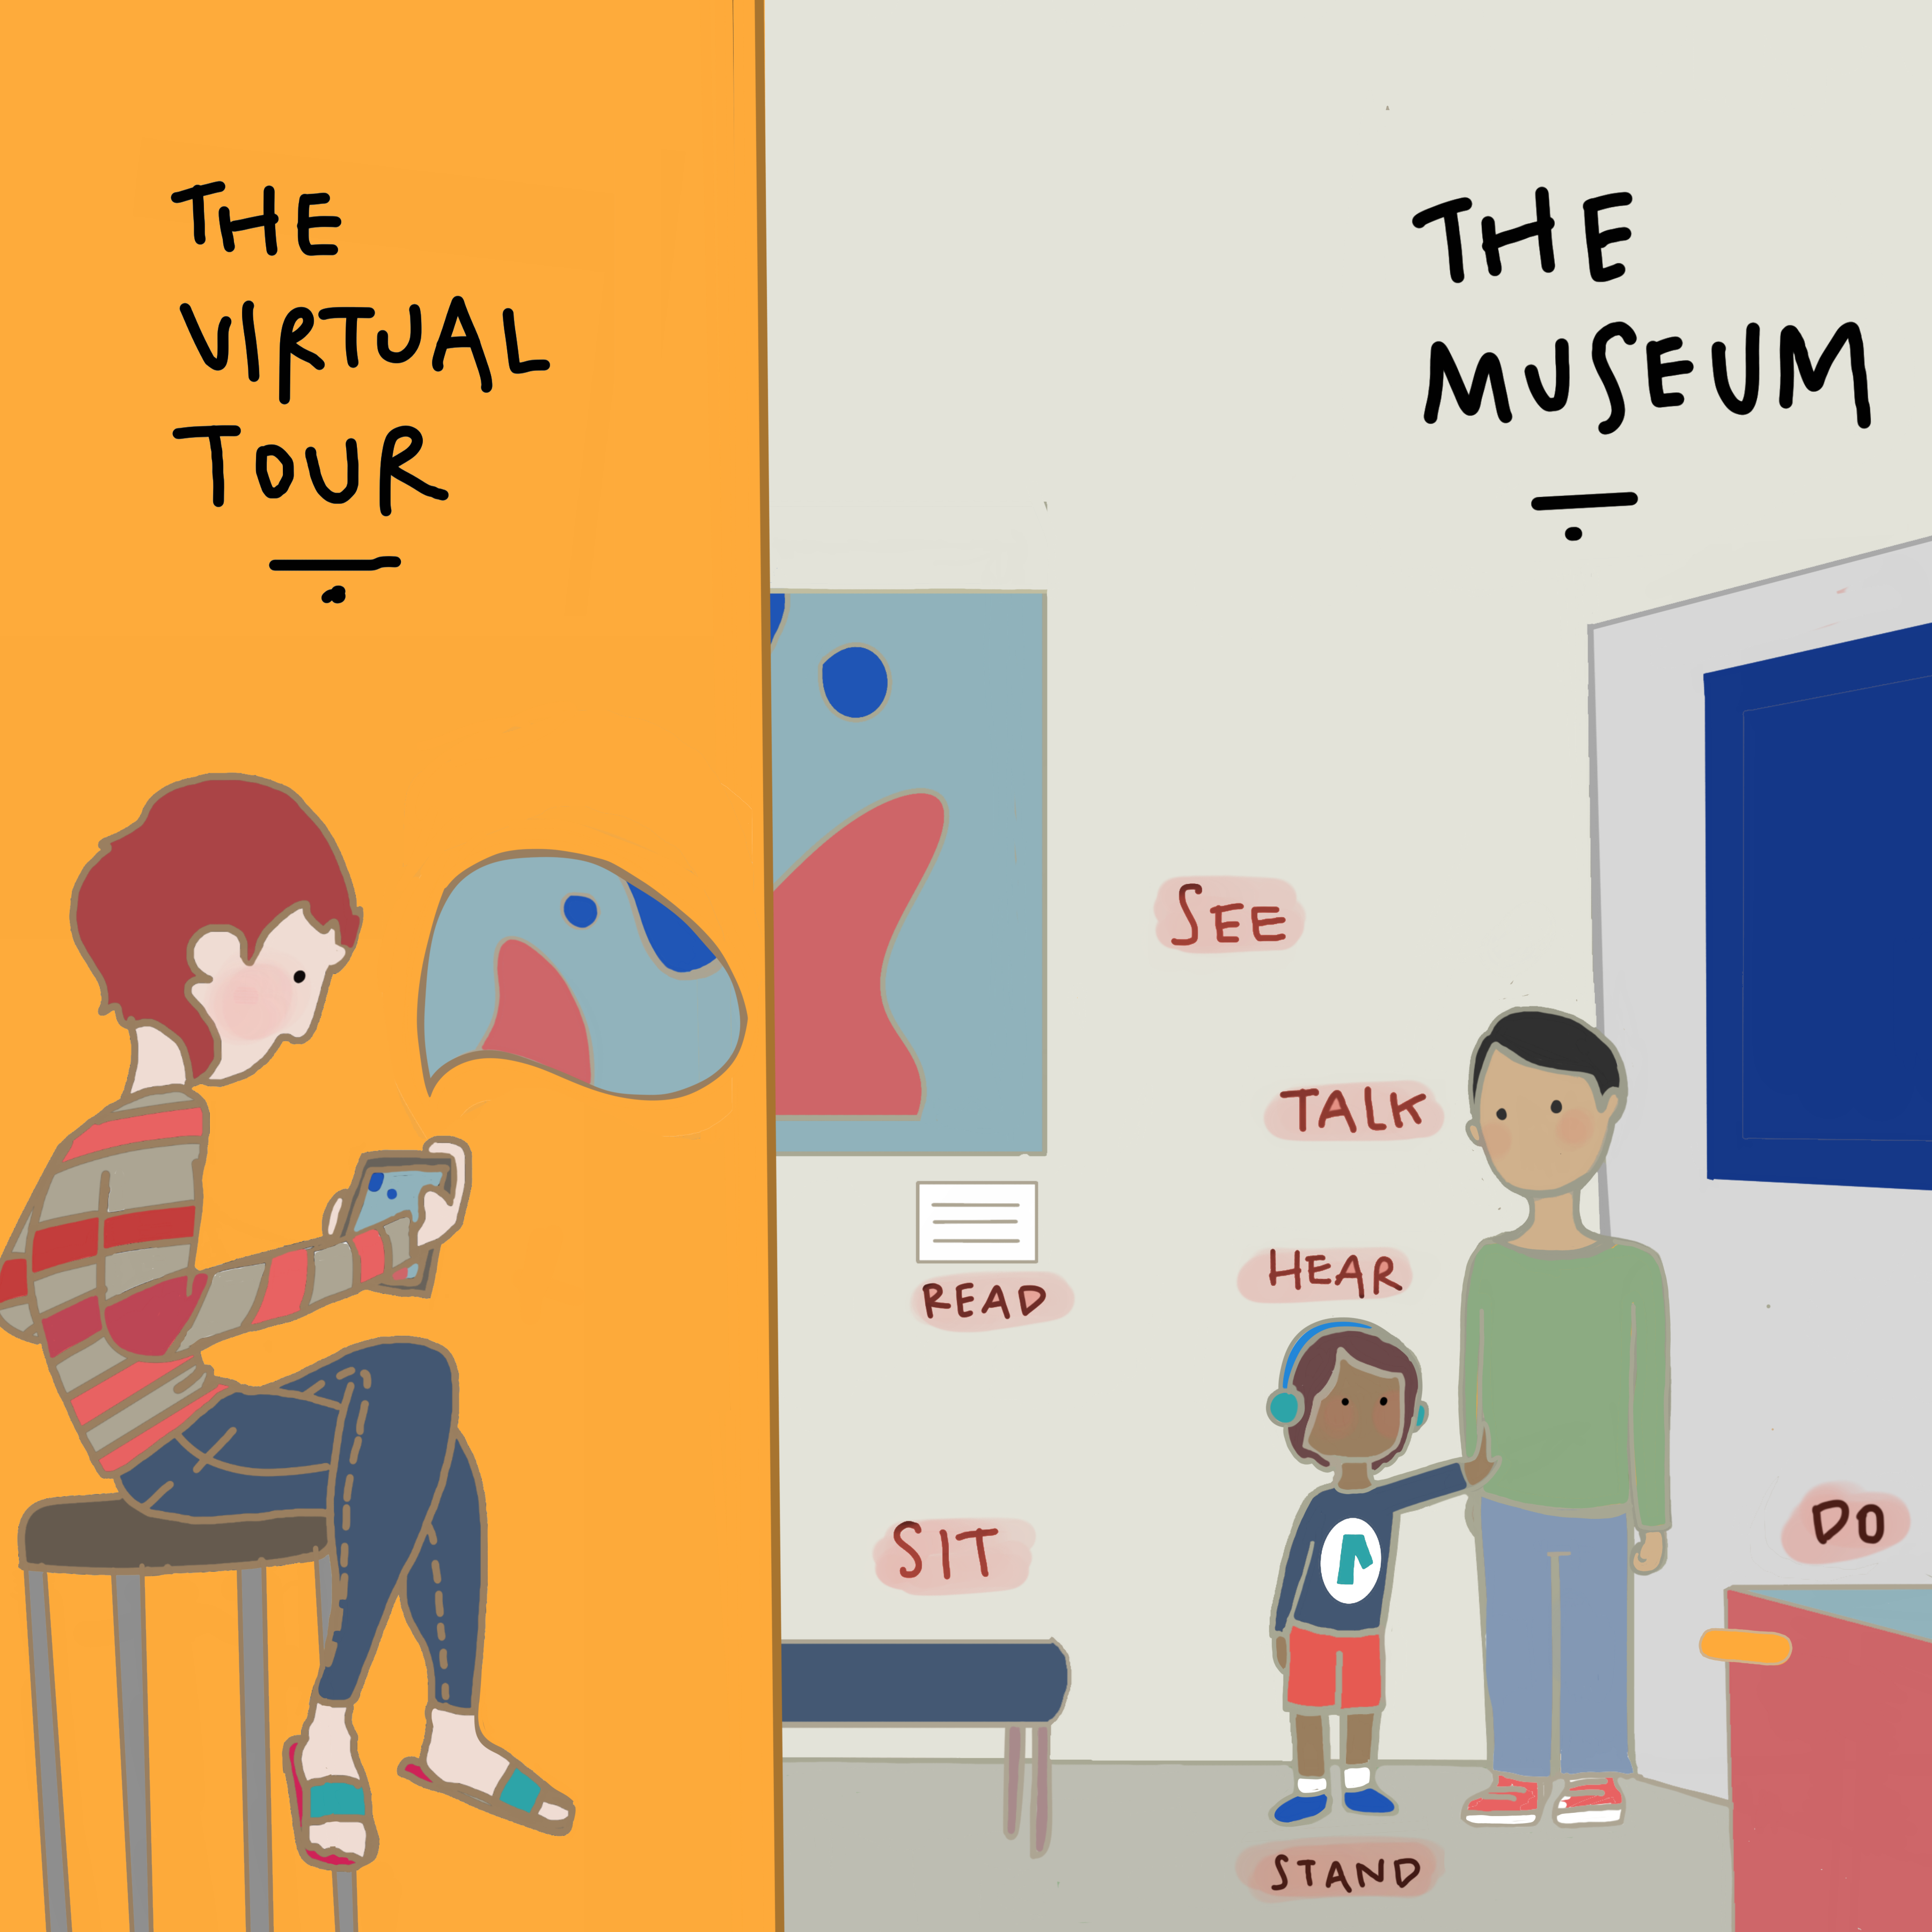 On the left a boy visiting a museum virtually through his tablet; on the right, an adult and a kid within a museum space.